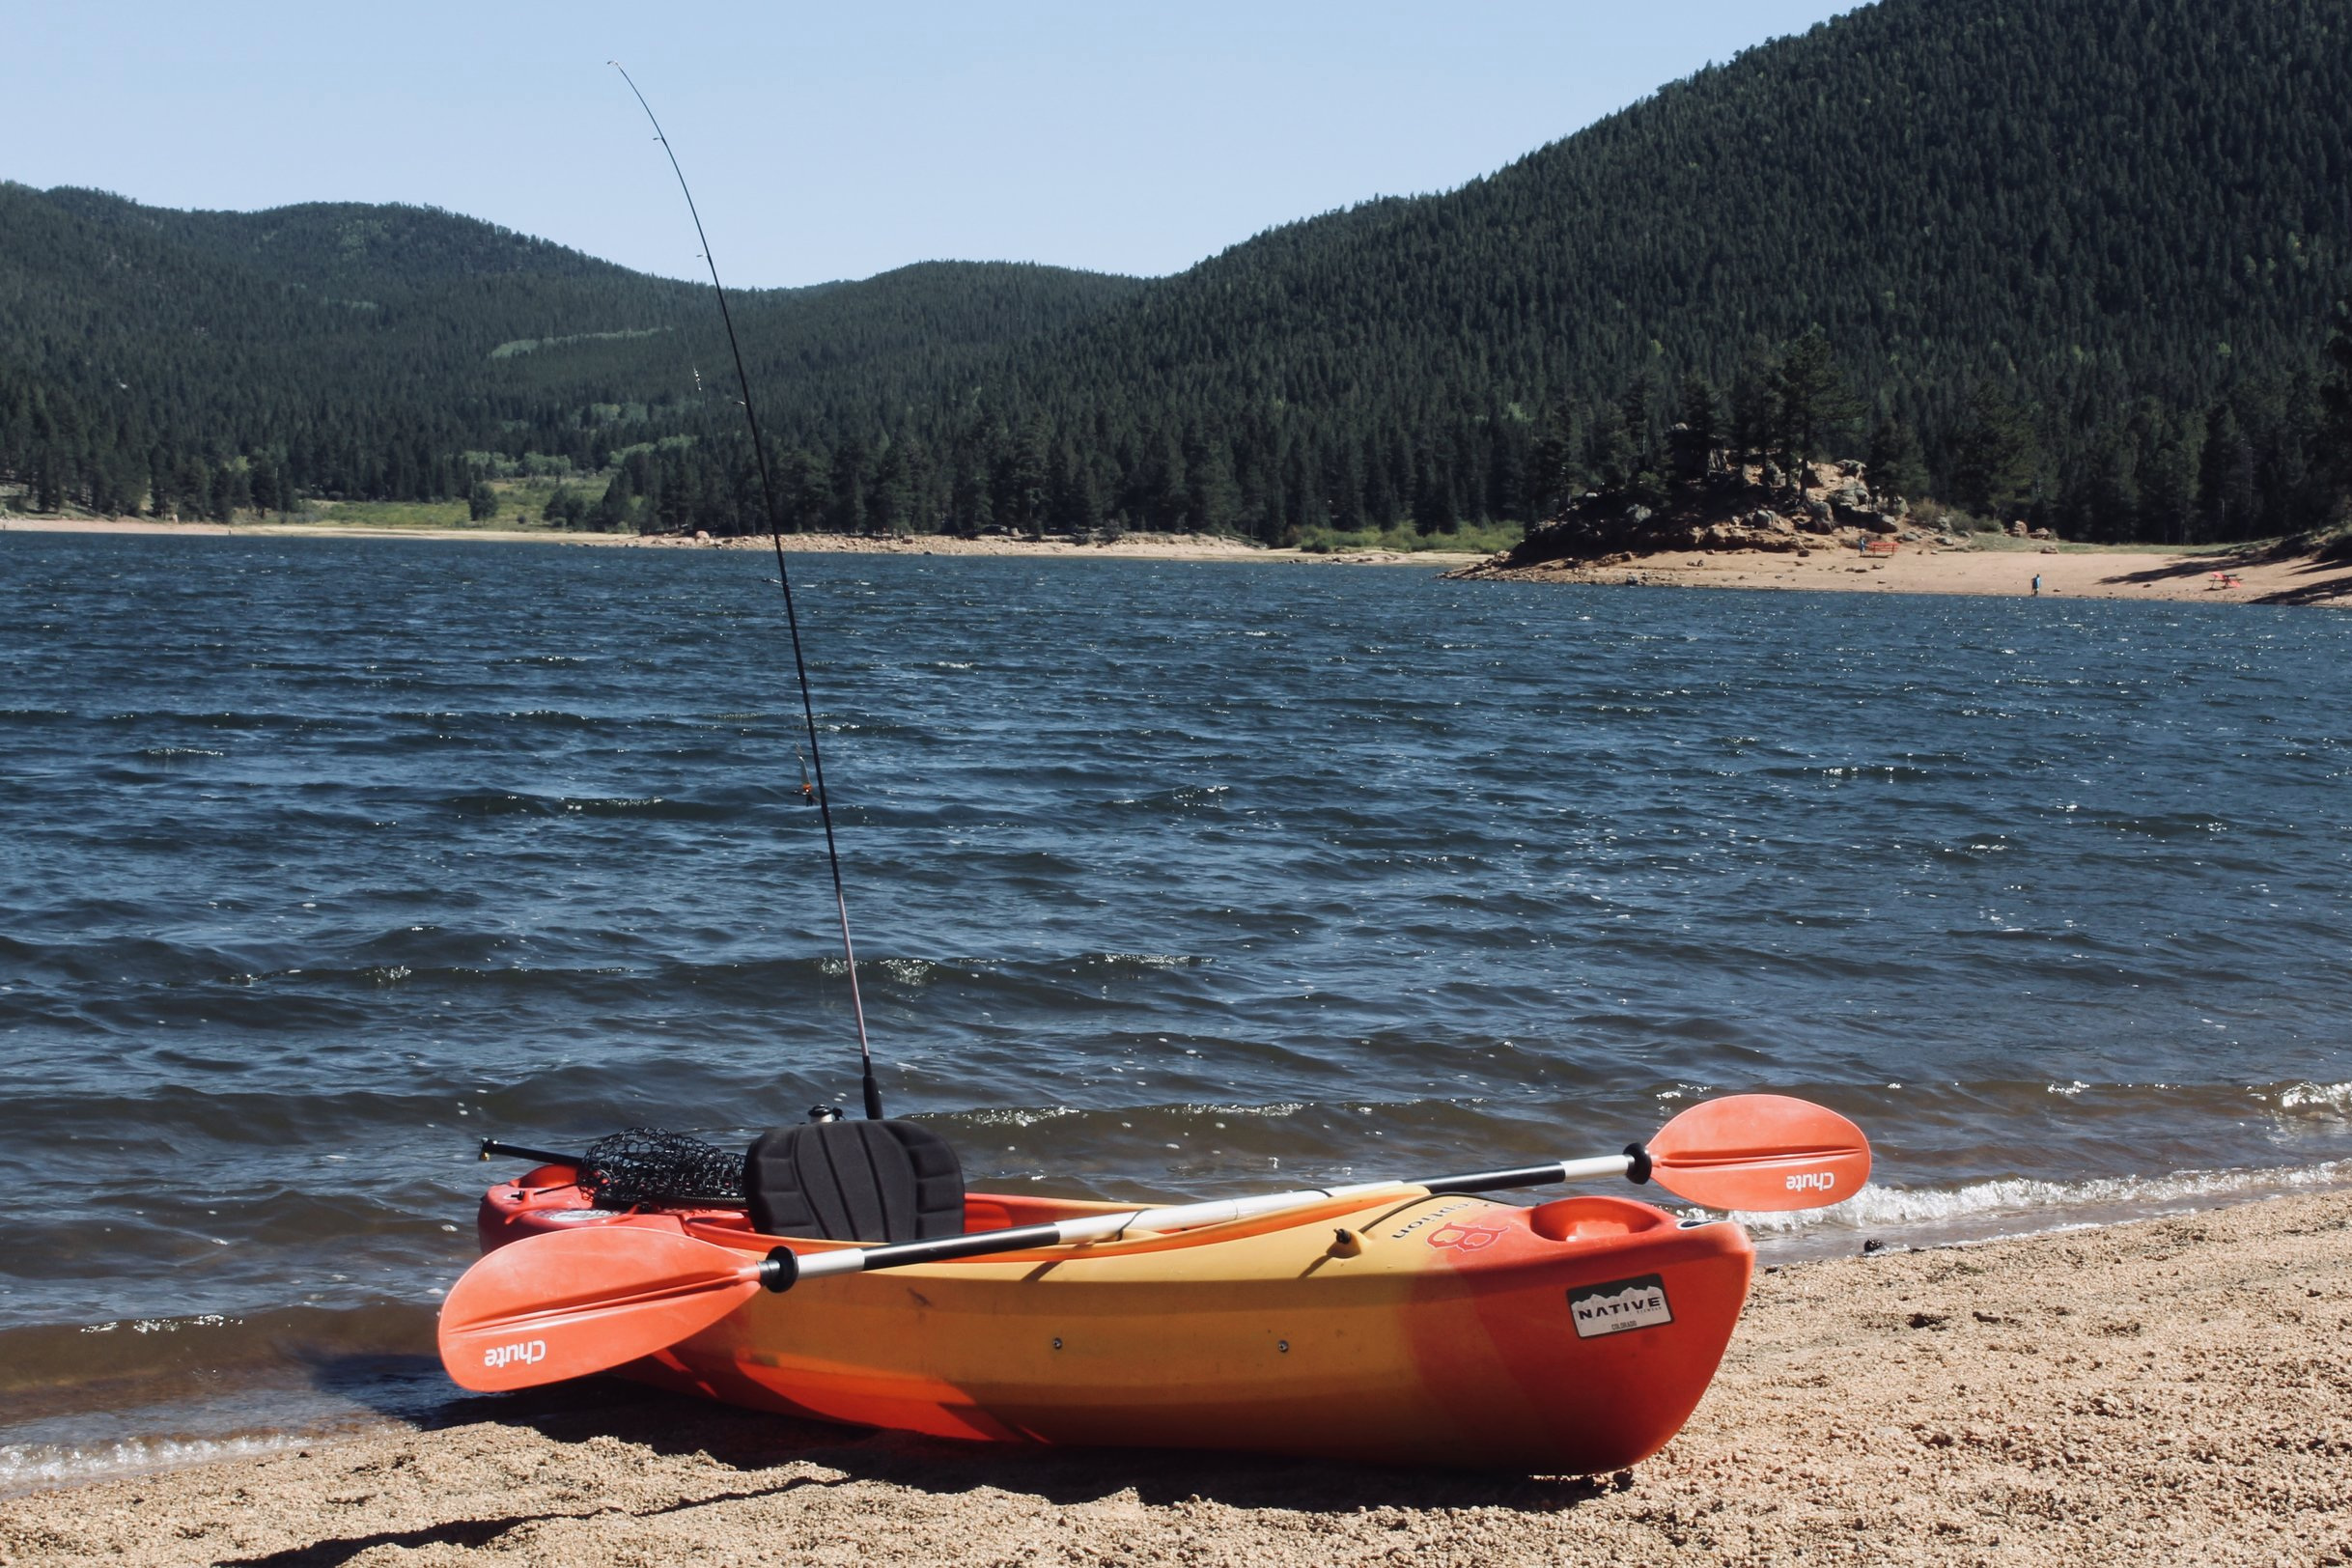 Activities - Find out what there is to do at the lake, and learn about our regulations on fishing, boating, pets, fires and more.